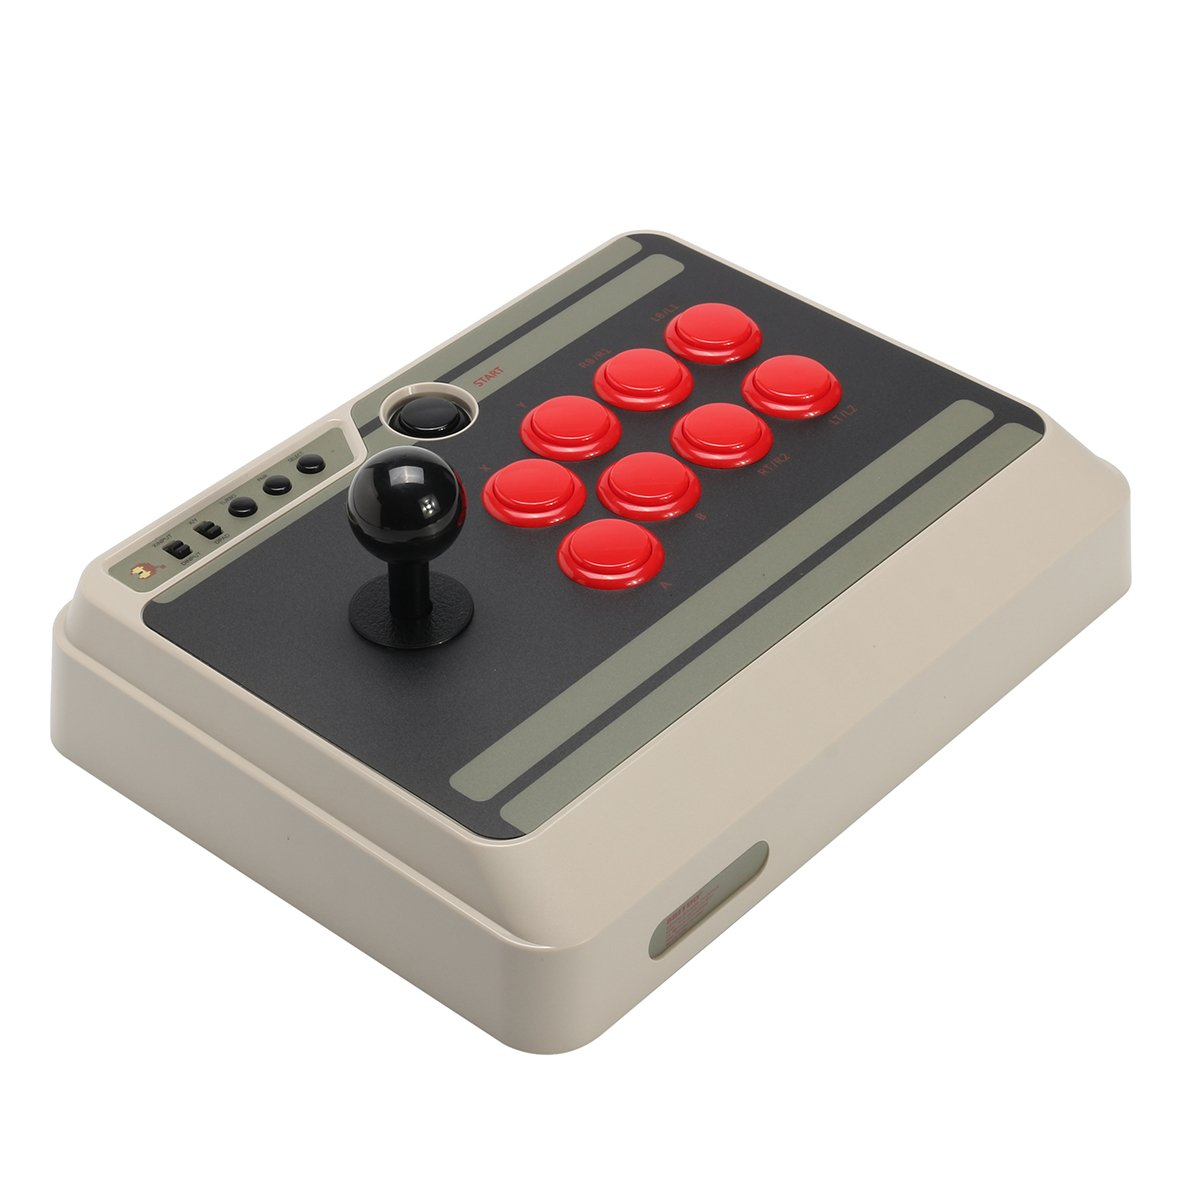 8Bitdo NES30 Arcade Stick Joystick For Nintendo Switch PC Android  Compatible Game Controller